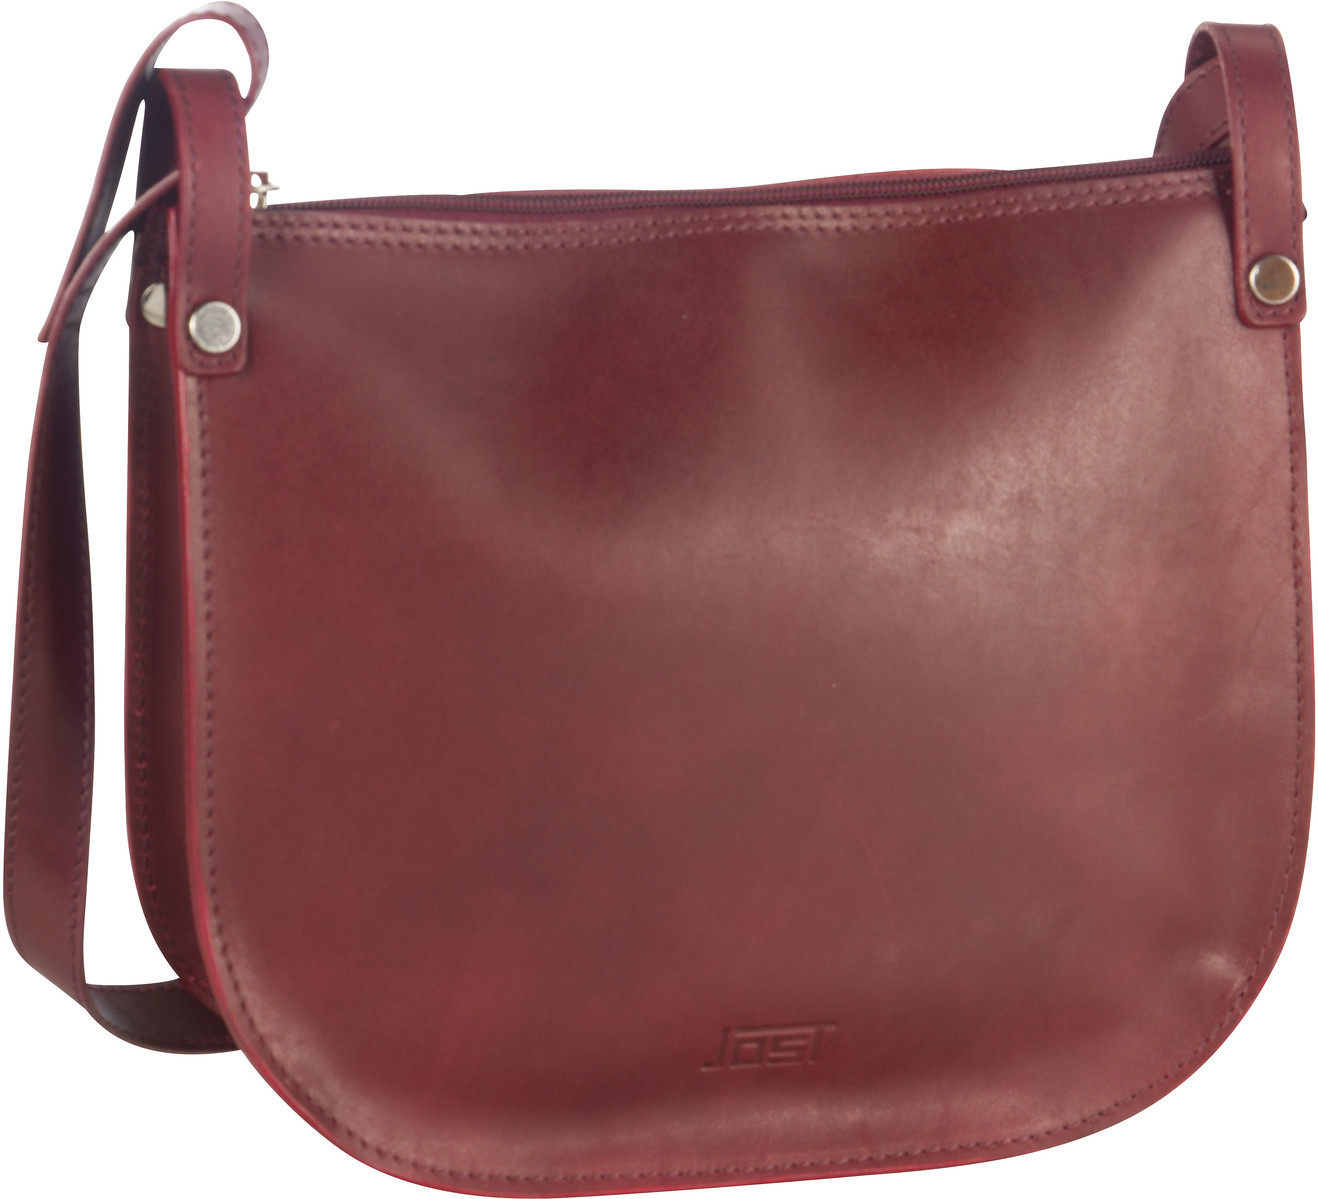 Umhängetasche Rana 1274 Shoulder Bag Bordeaux